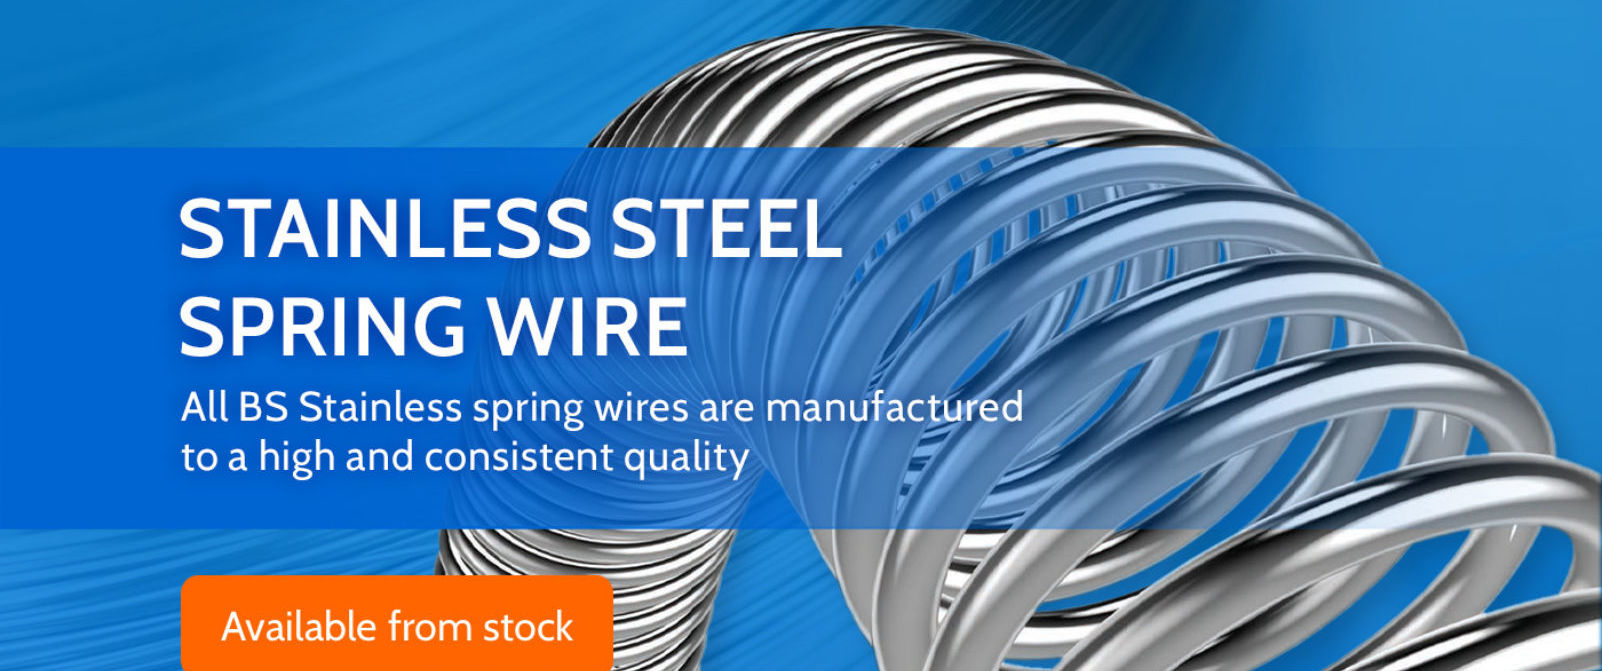 Stainless Steel Spring Wire. Stainless steel suppliers